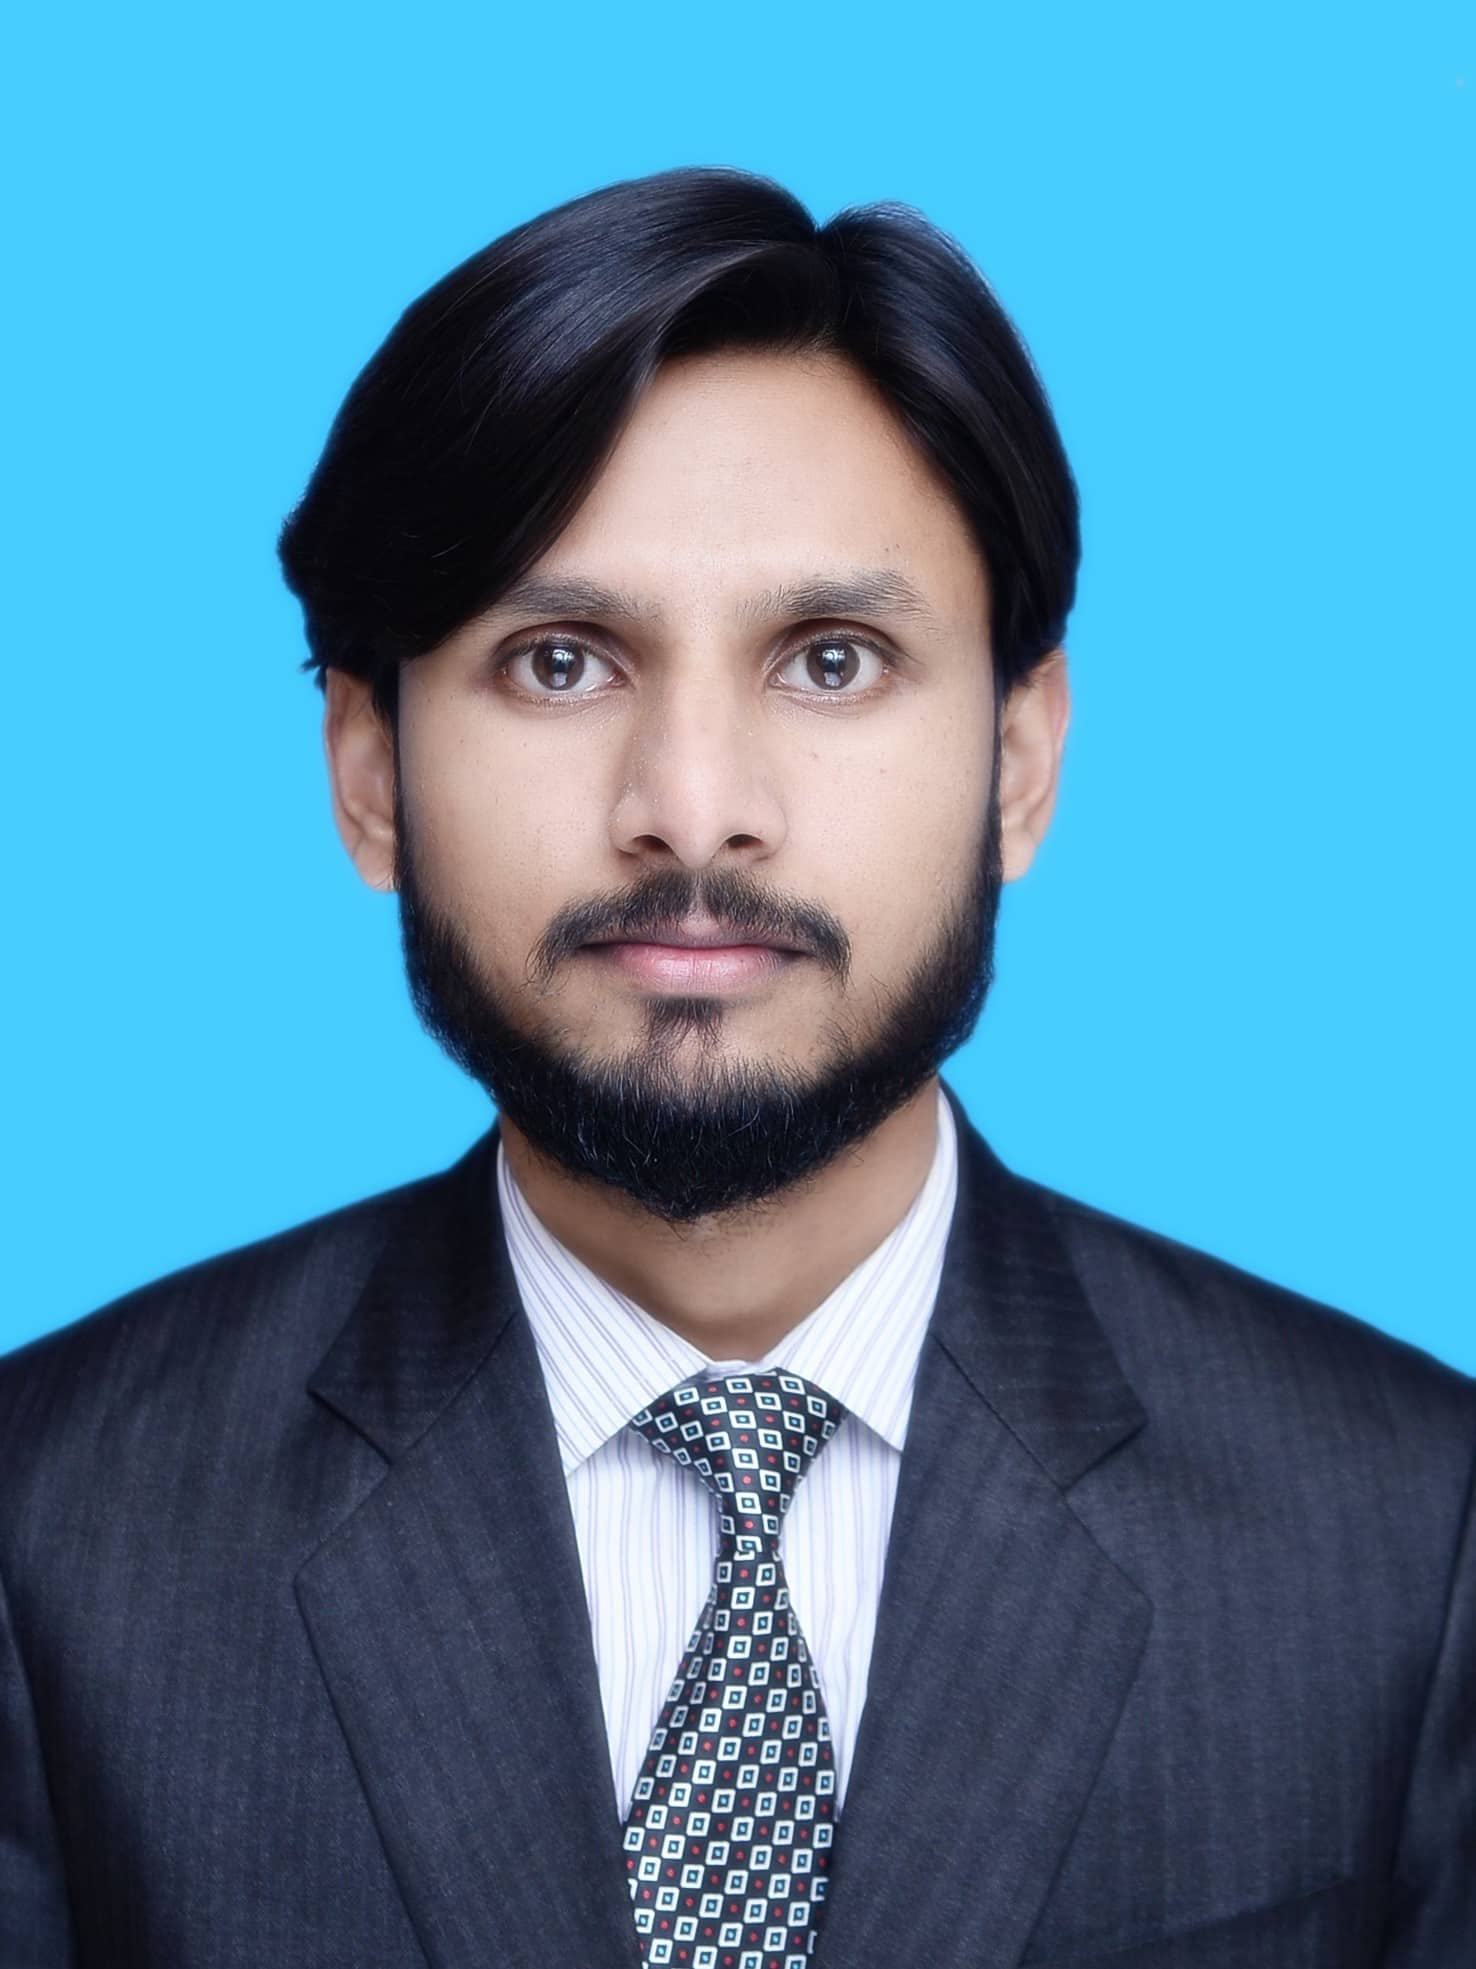 Mr. Afaq Javed